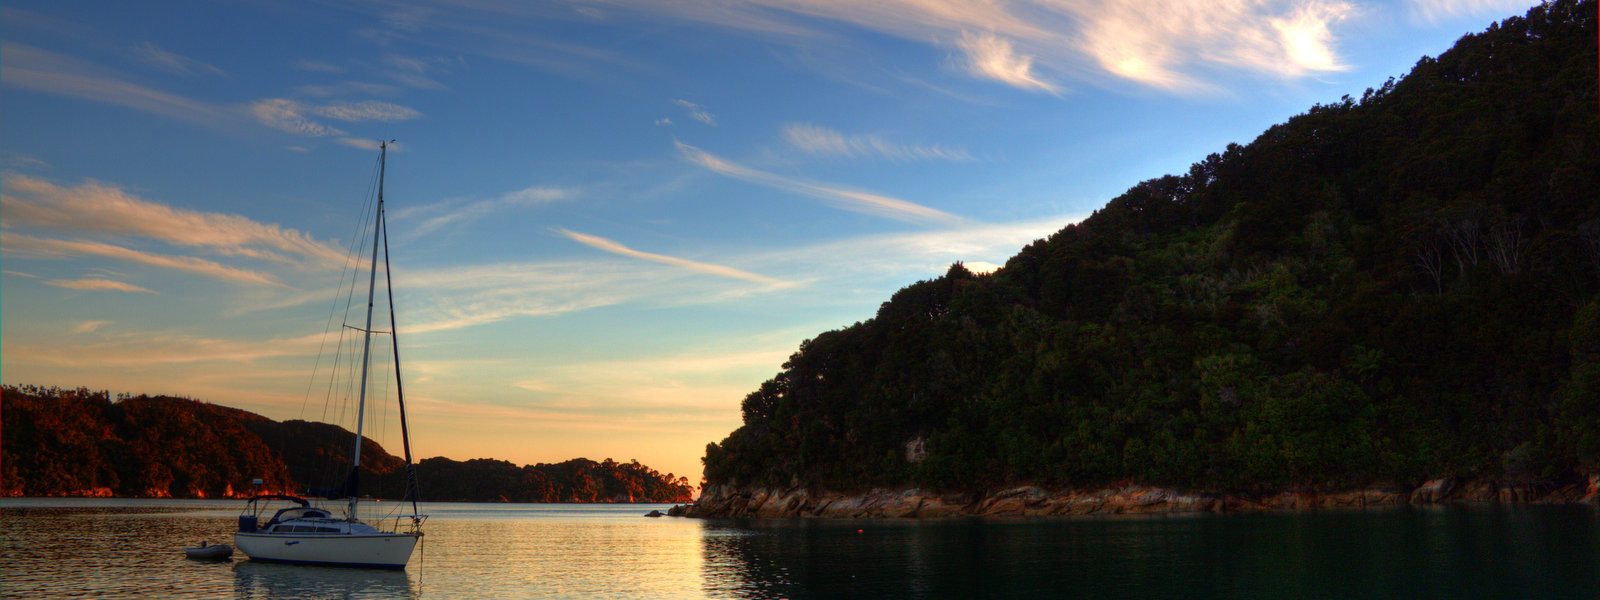 Let us take you on a journey through New Zealand's Abel Tasman National Park